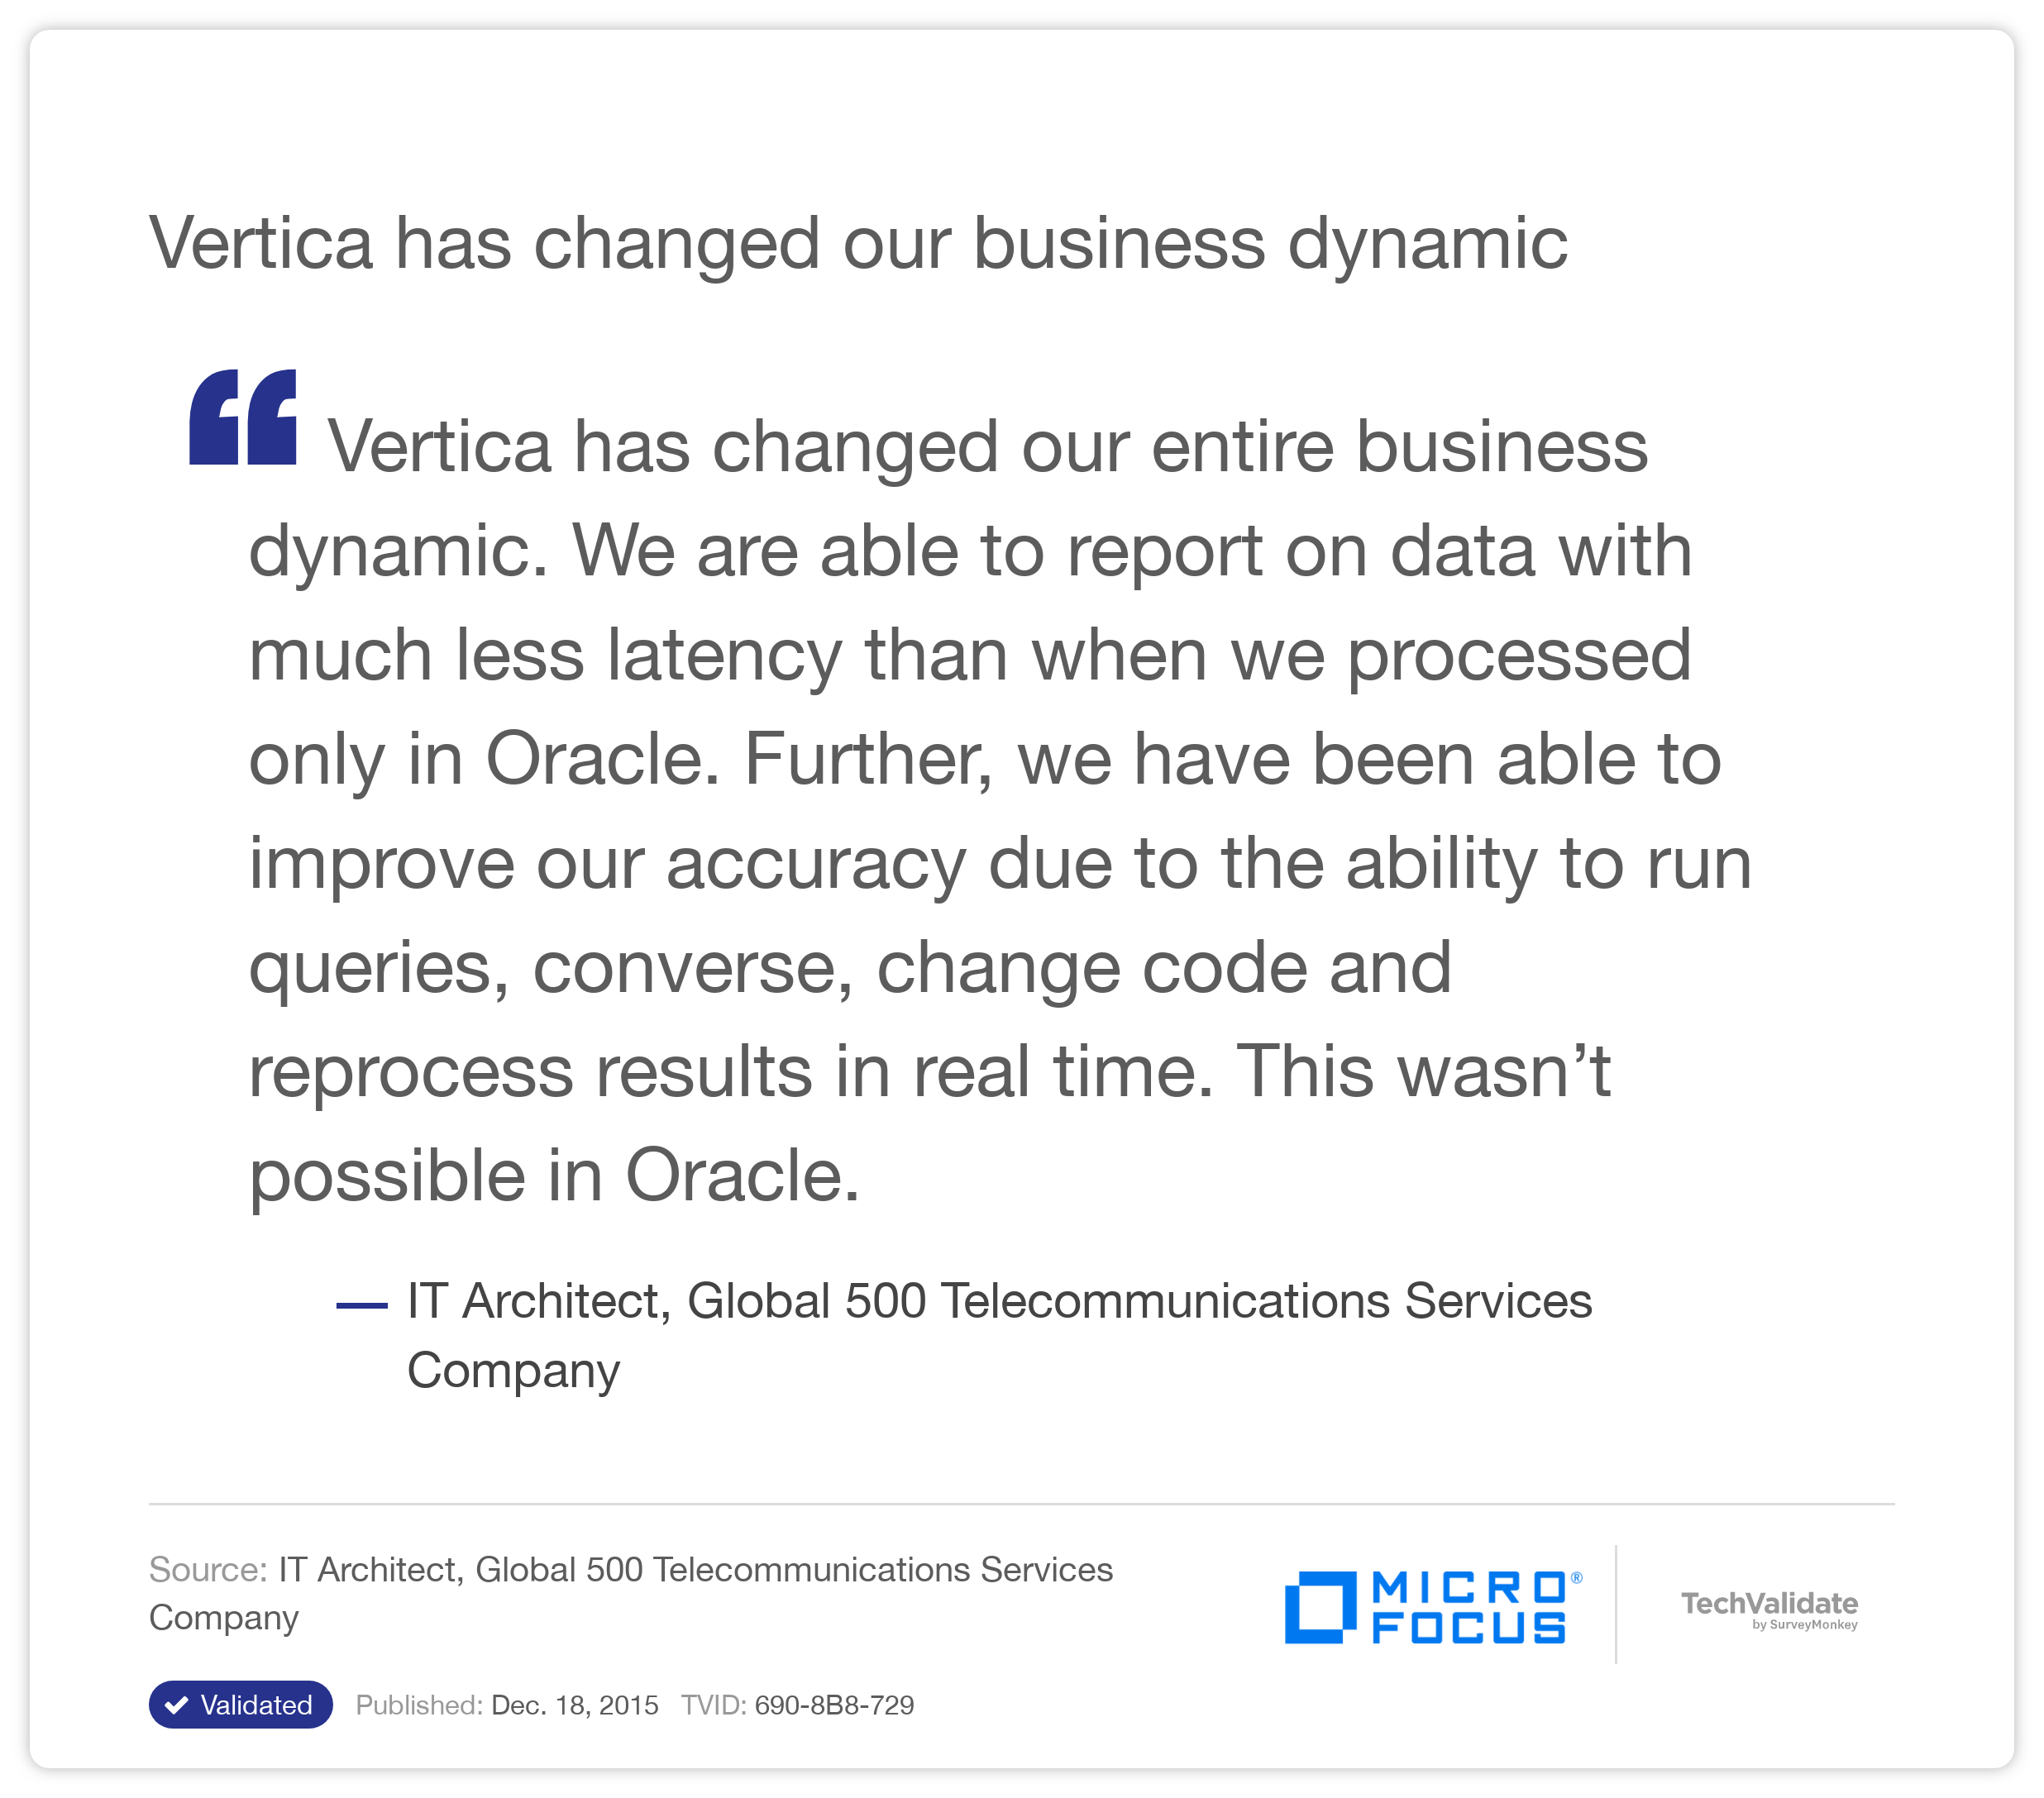 Vertica has changed our business dynamic